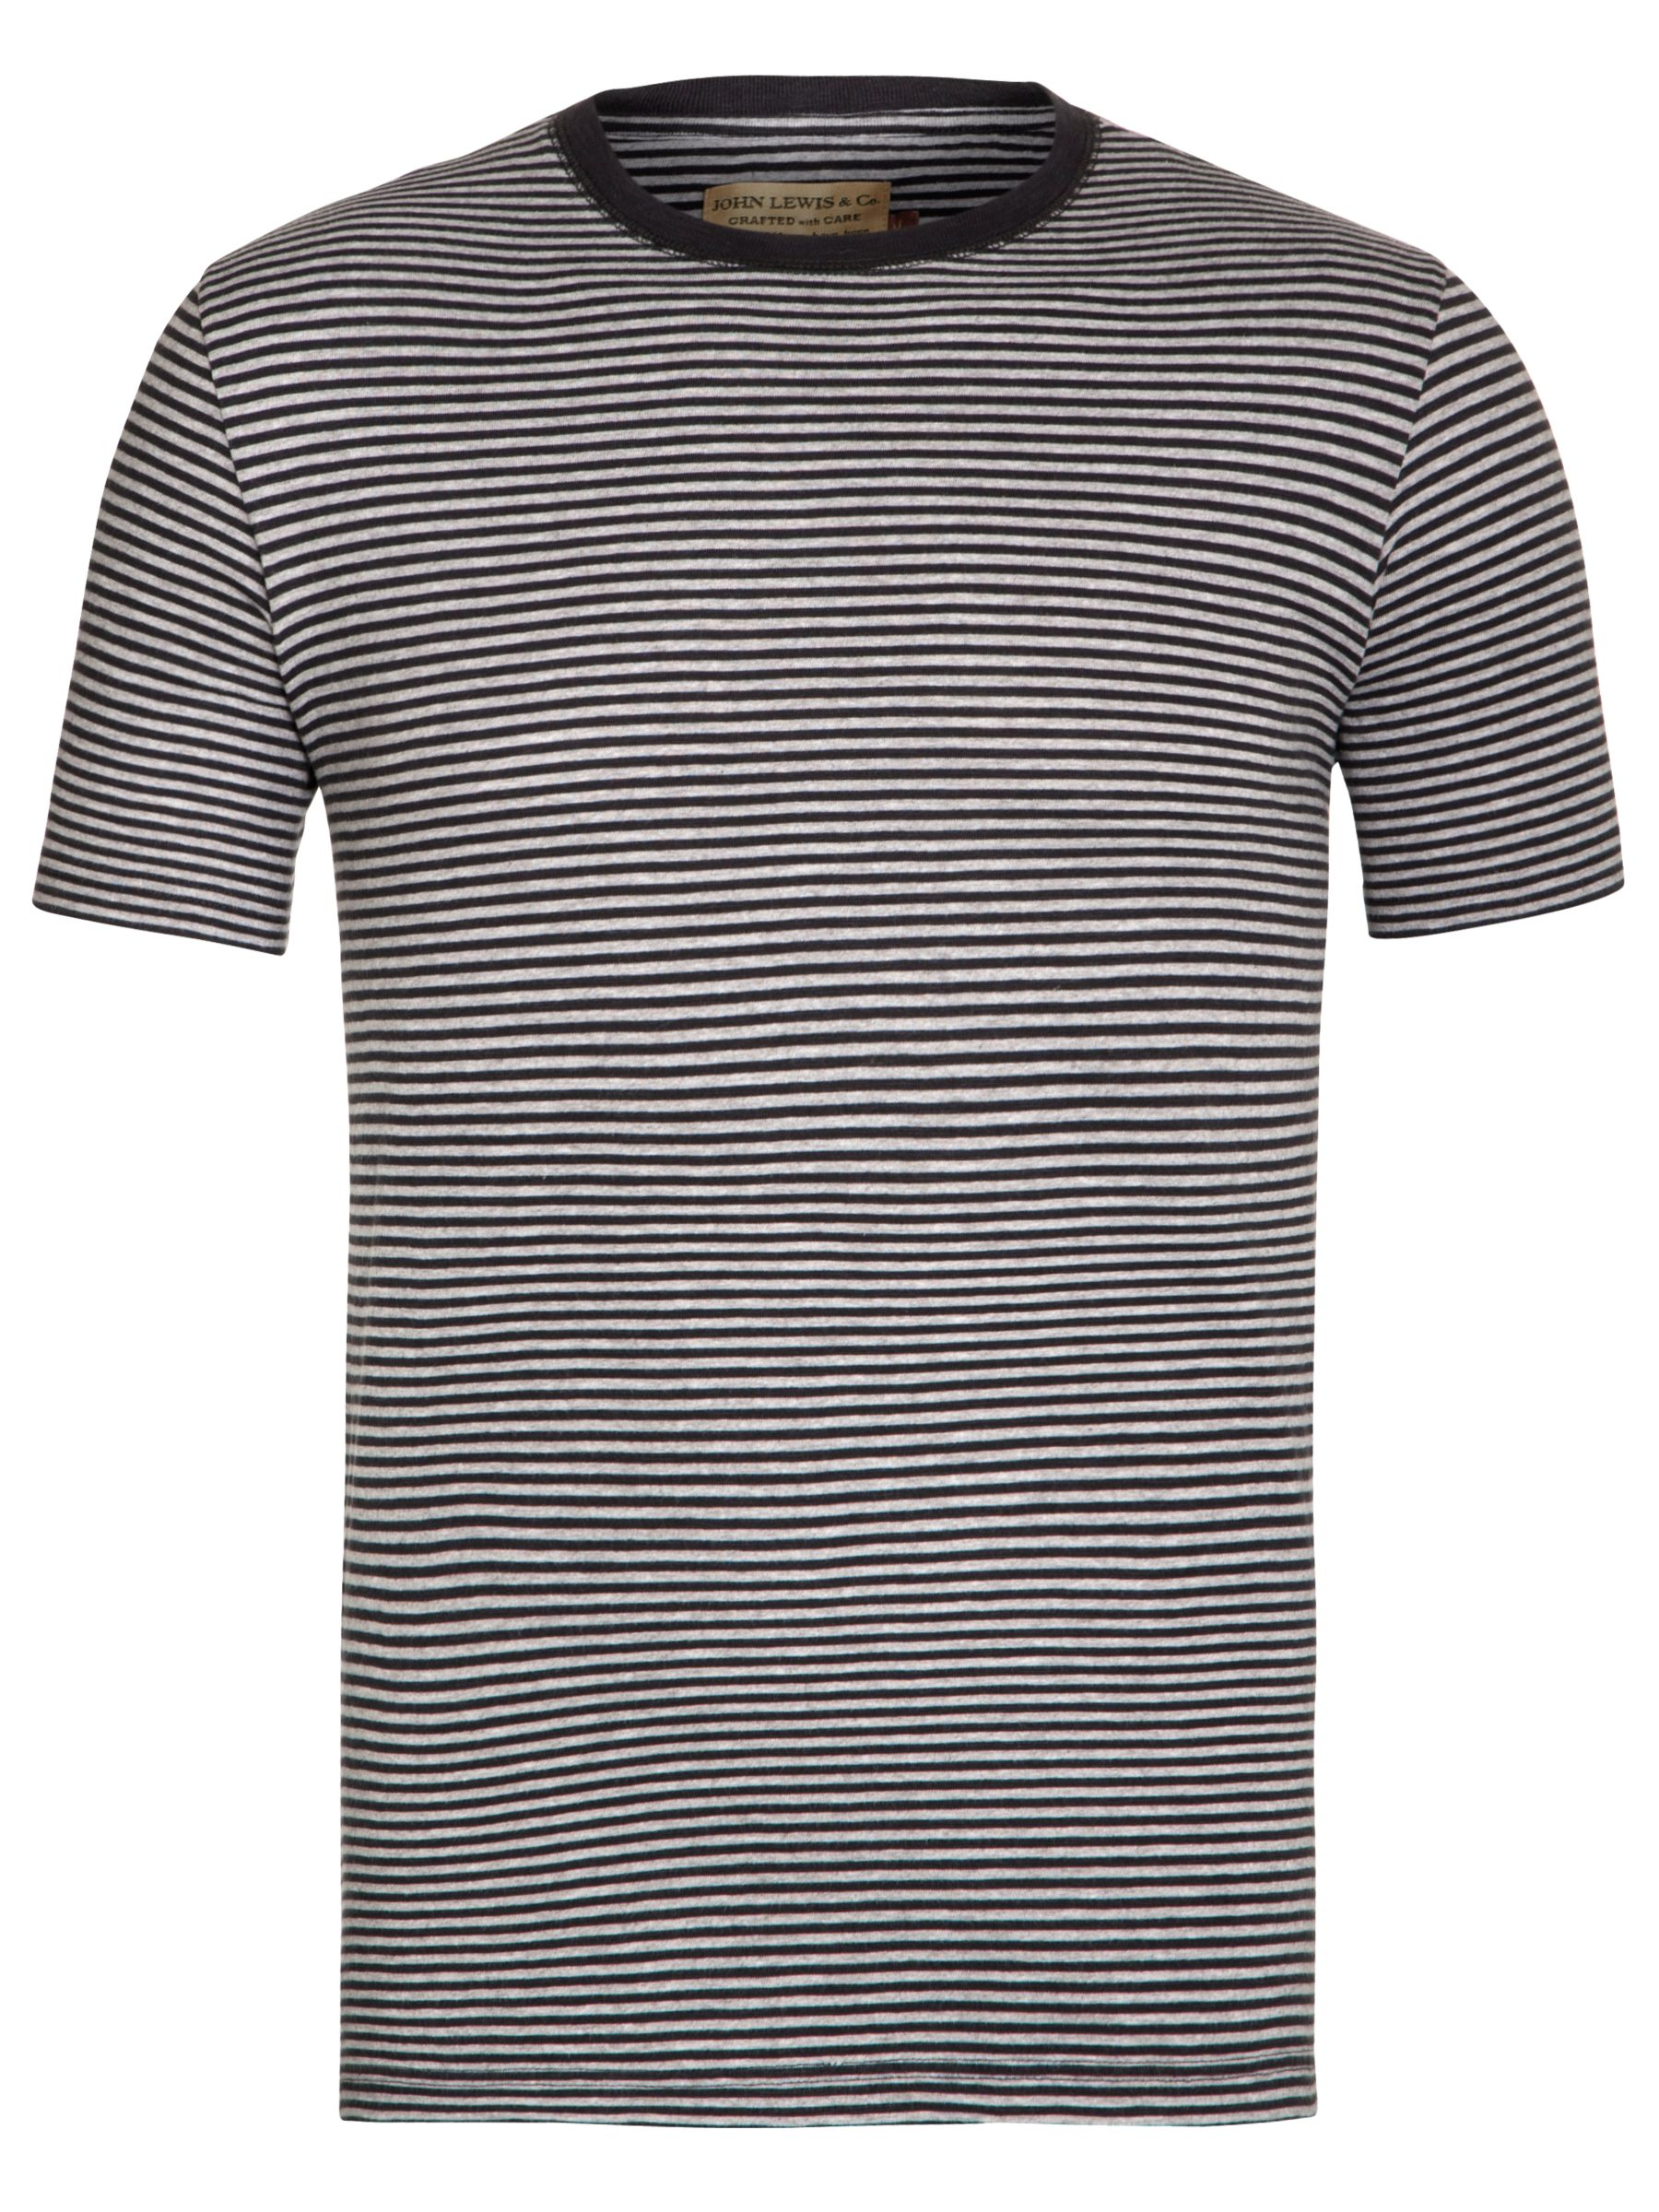 JOHN LEWIS & Co. Slim Stripe T-Shirt, Red Image